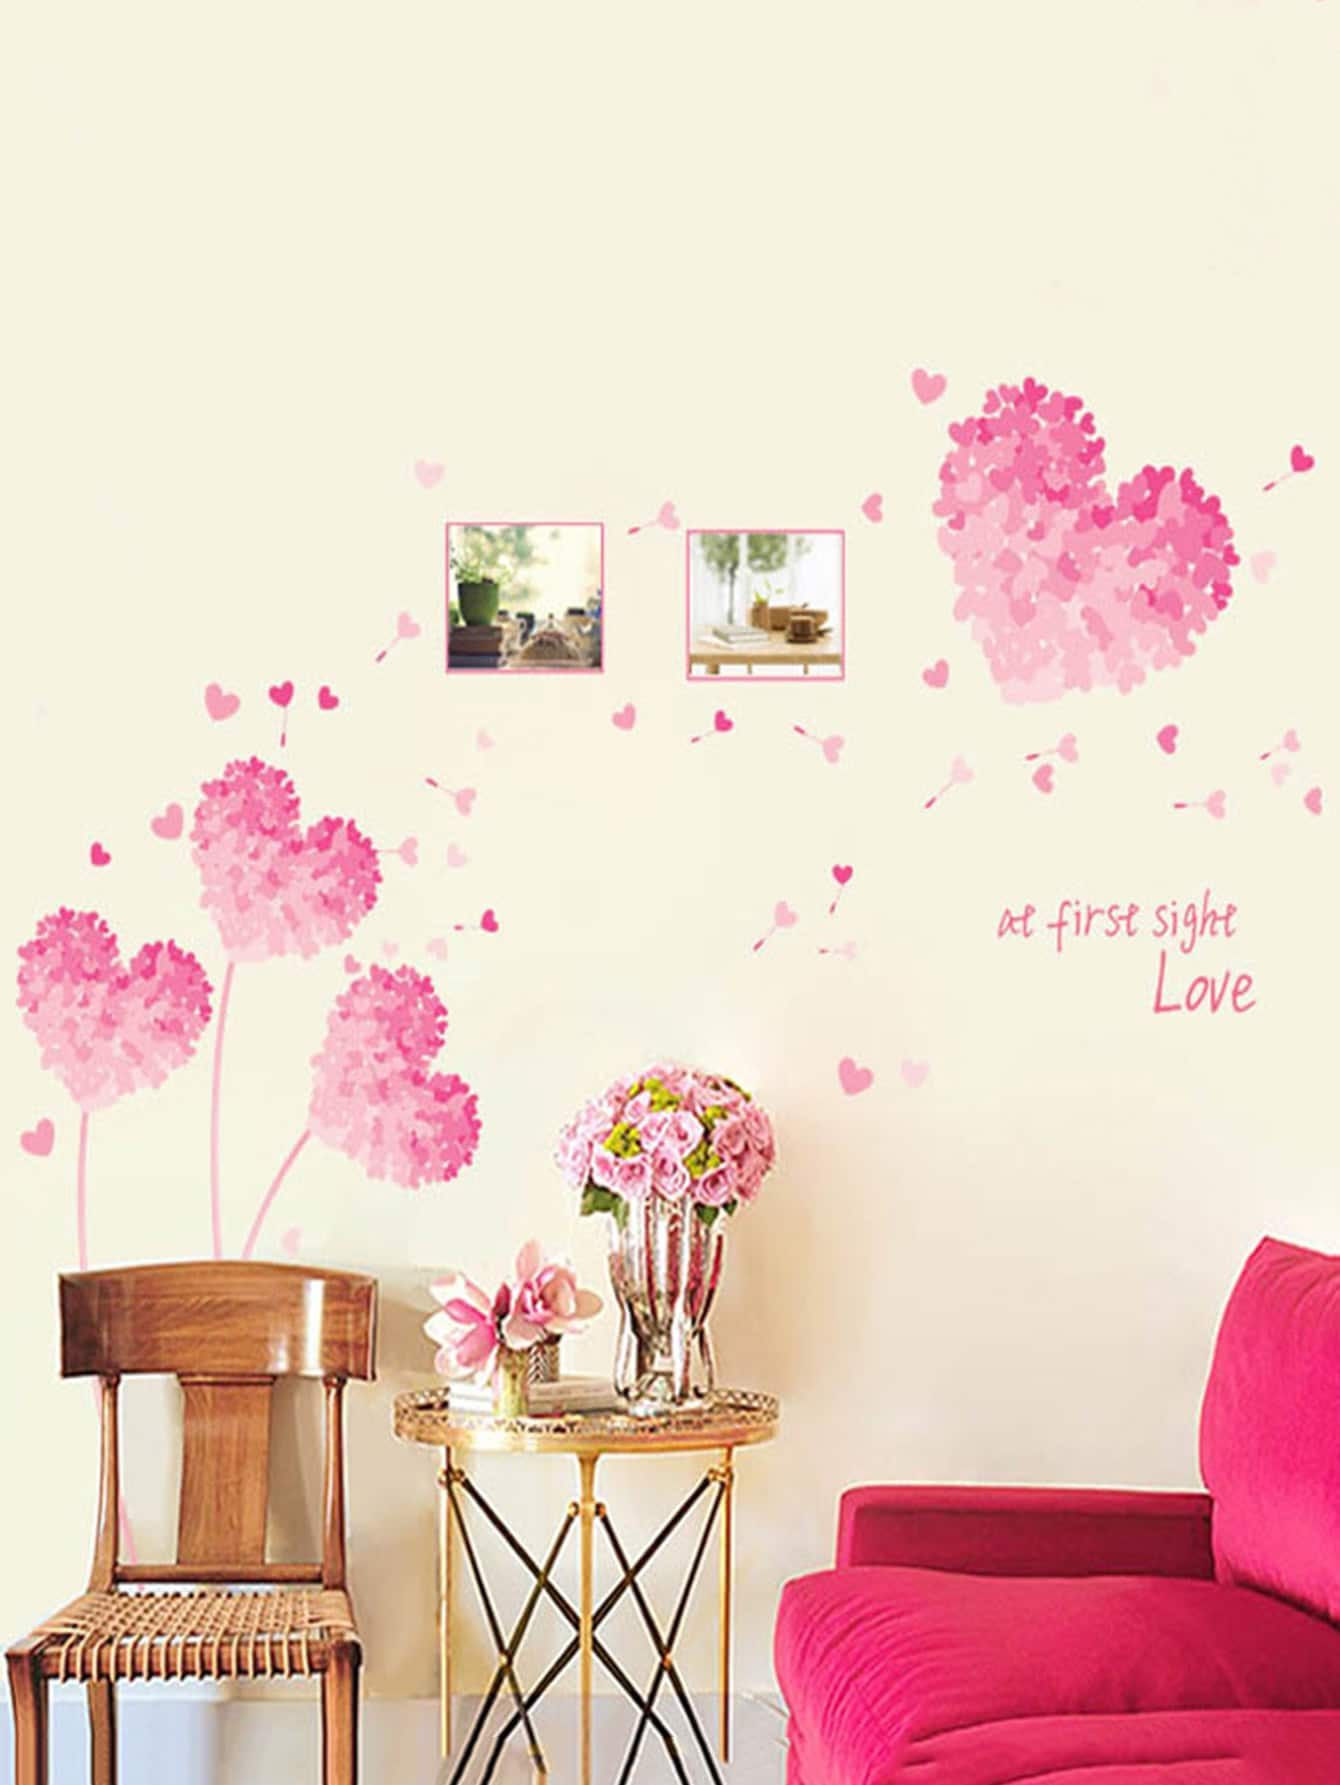 Pastel Heart Wall Decal family wall quote removable wall stickers home decal art mural